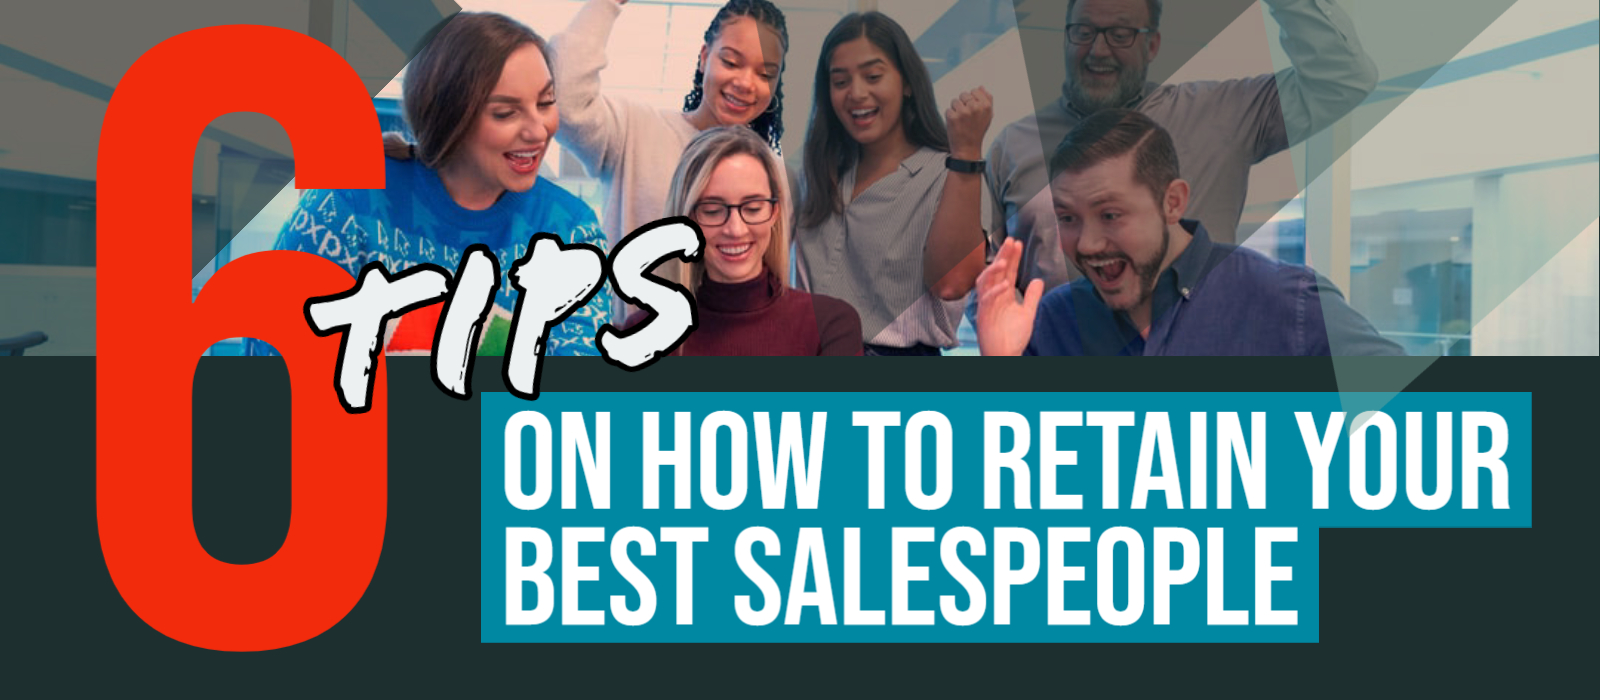 6 Tips To Help You Retain Your Best Salespeople Paul Argueta cheapertokeepthem Motivational speaker